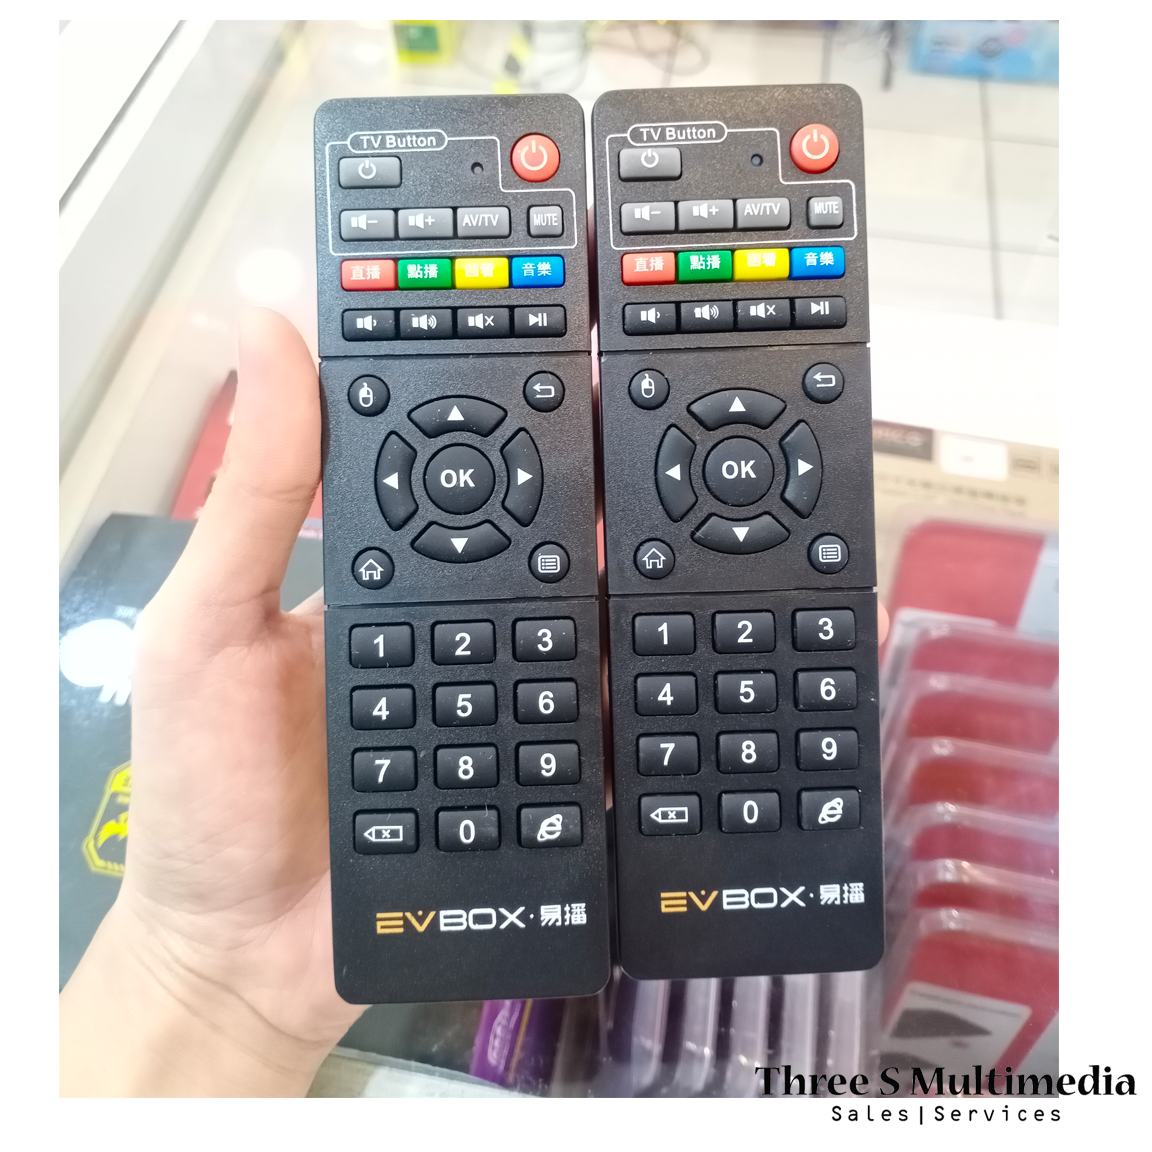 100 % ORIGINAL EVPAD REMOTE CONTROL OR REMOTE CONTROL WITH VOICE FUNCTION